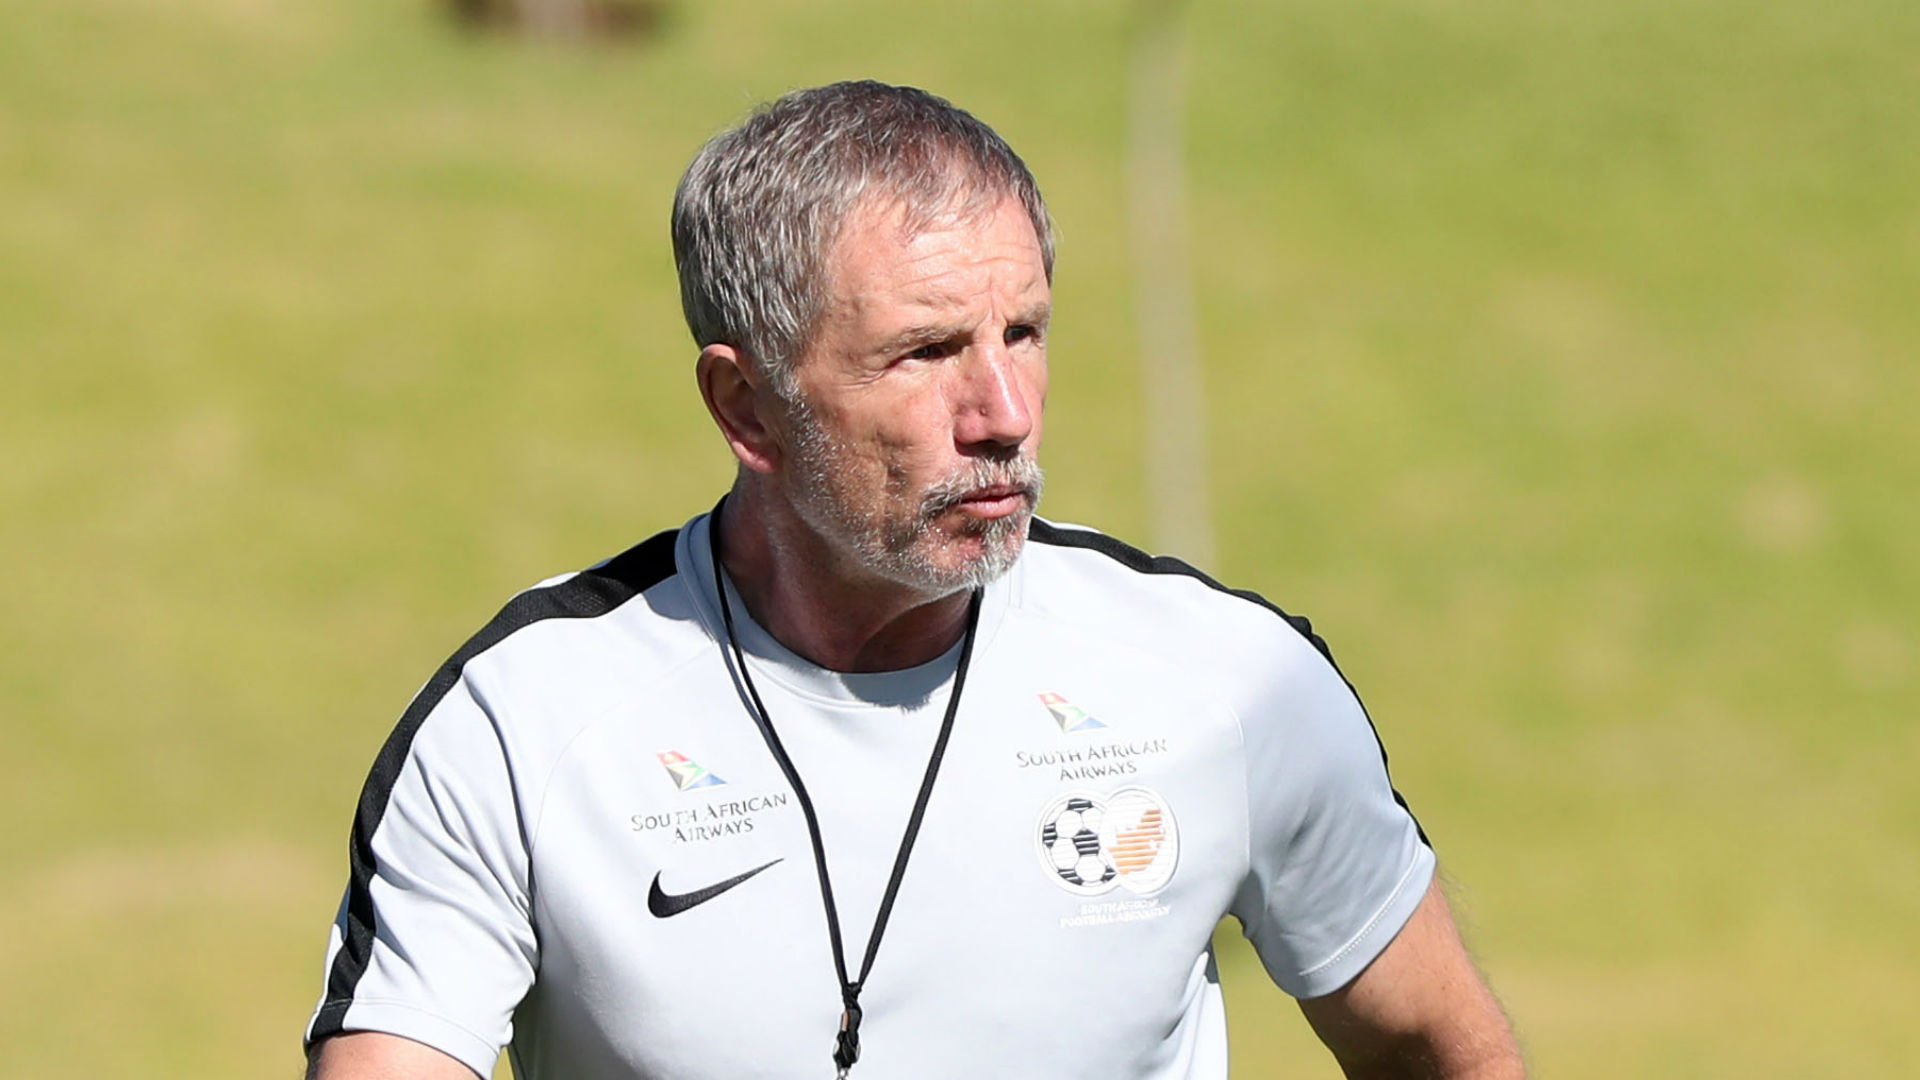 Afcon 2019: This Bafana Bafana side will not be afraid of any opponent, says Baxter